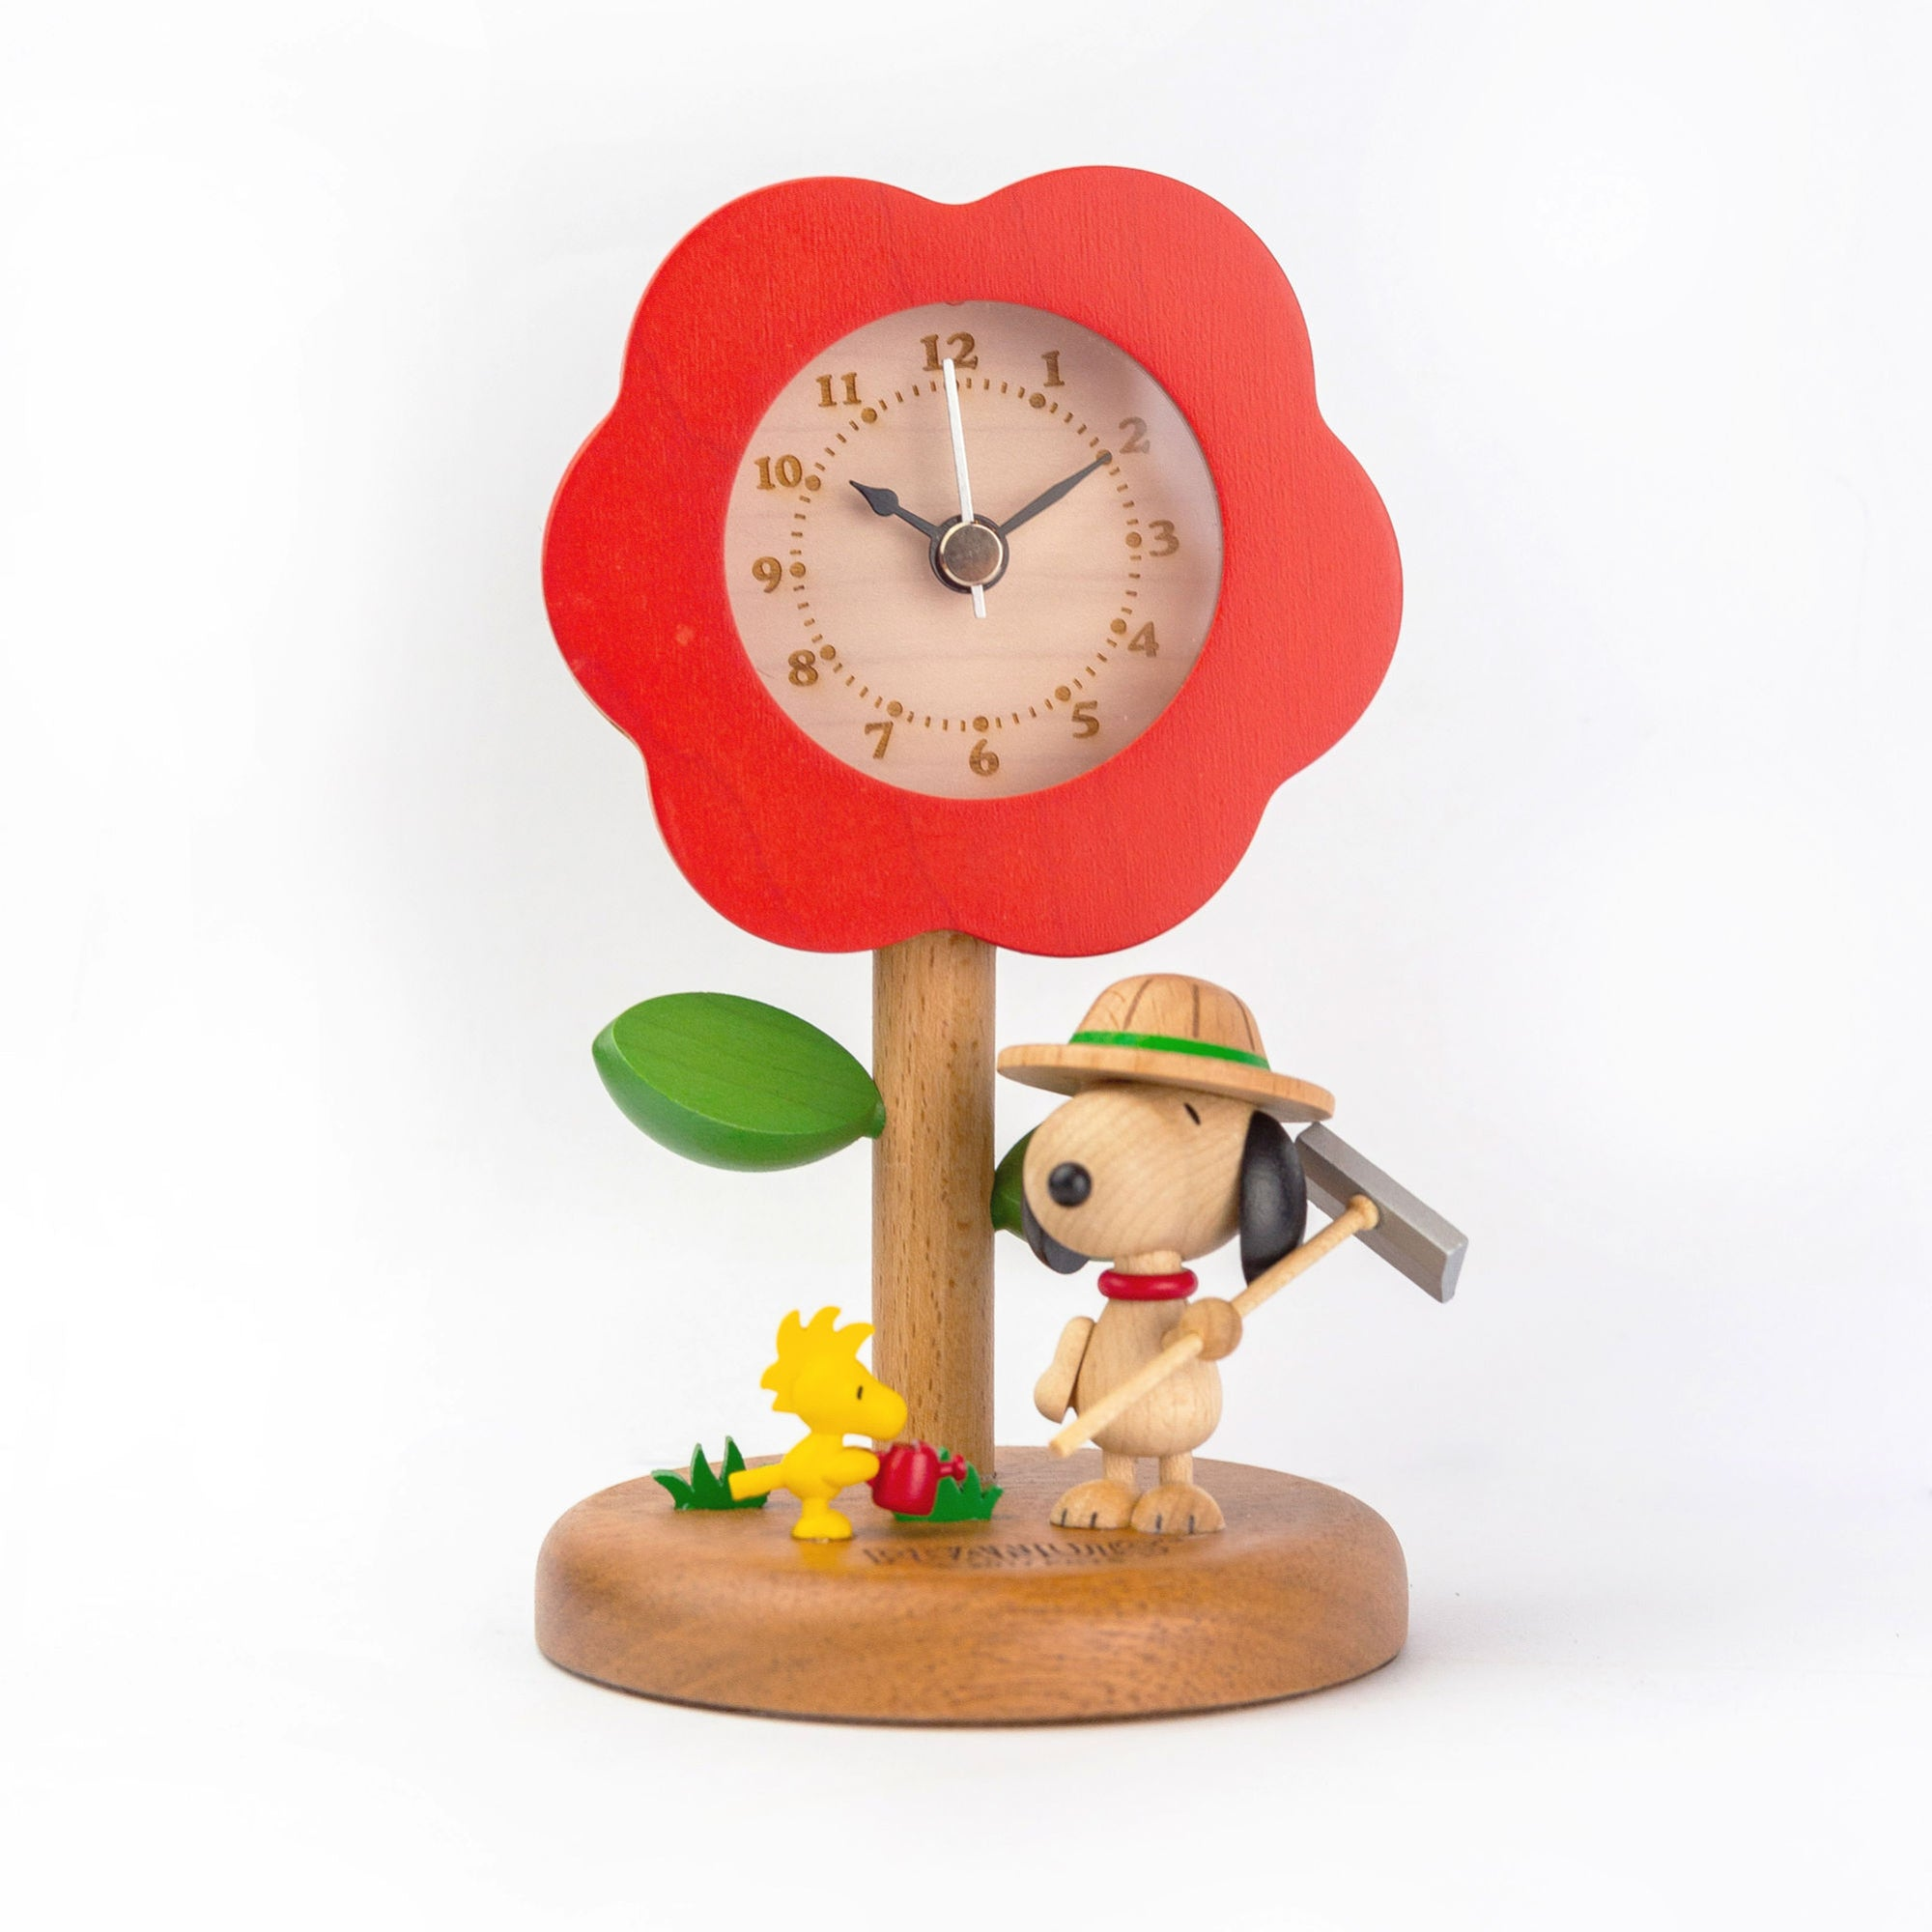 Wooderful Life wooden desk clock, Snoopy Farmer